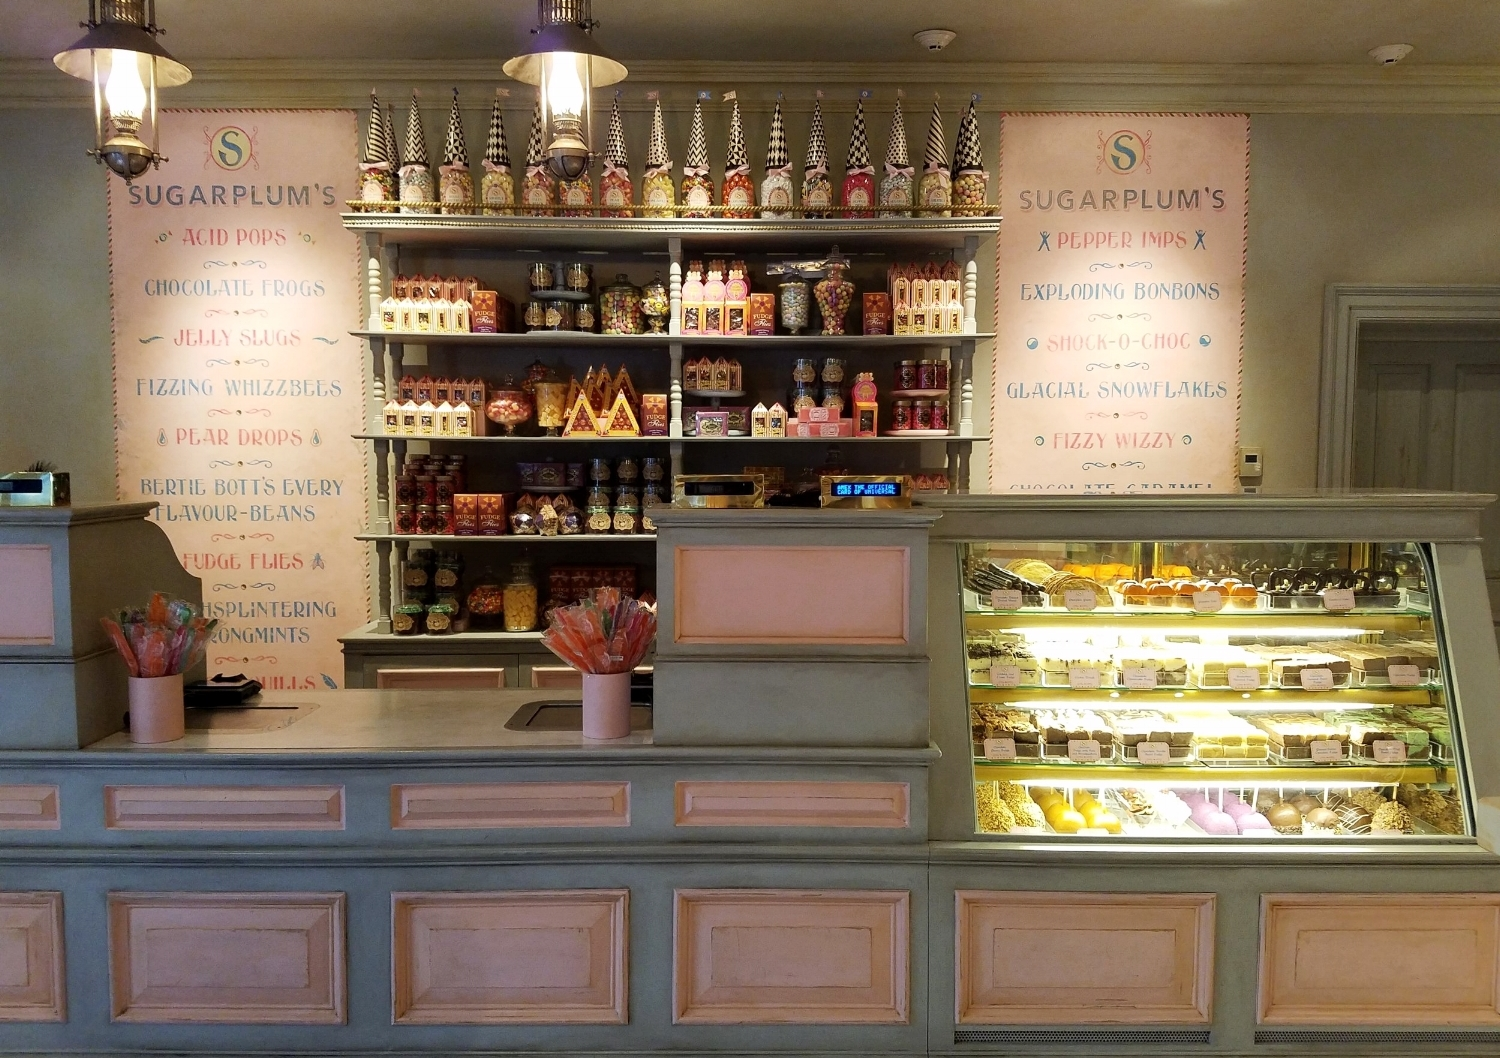 Sugarplum's Sweet Shop candy list and counter.